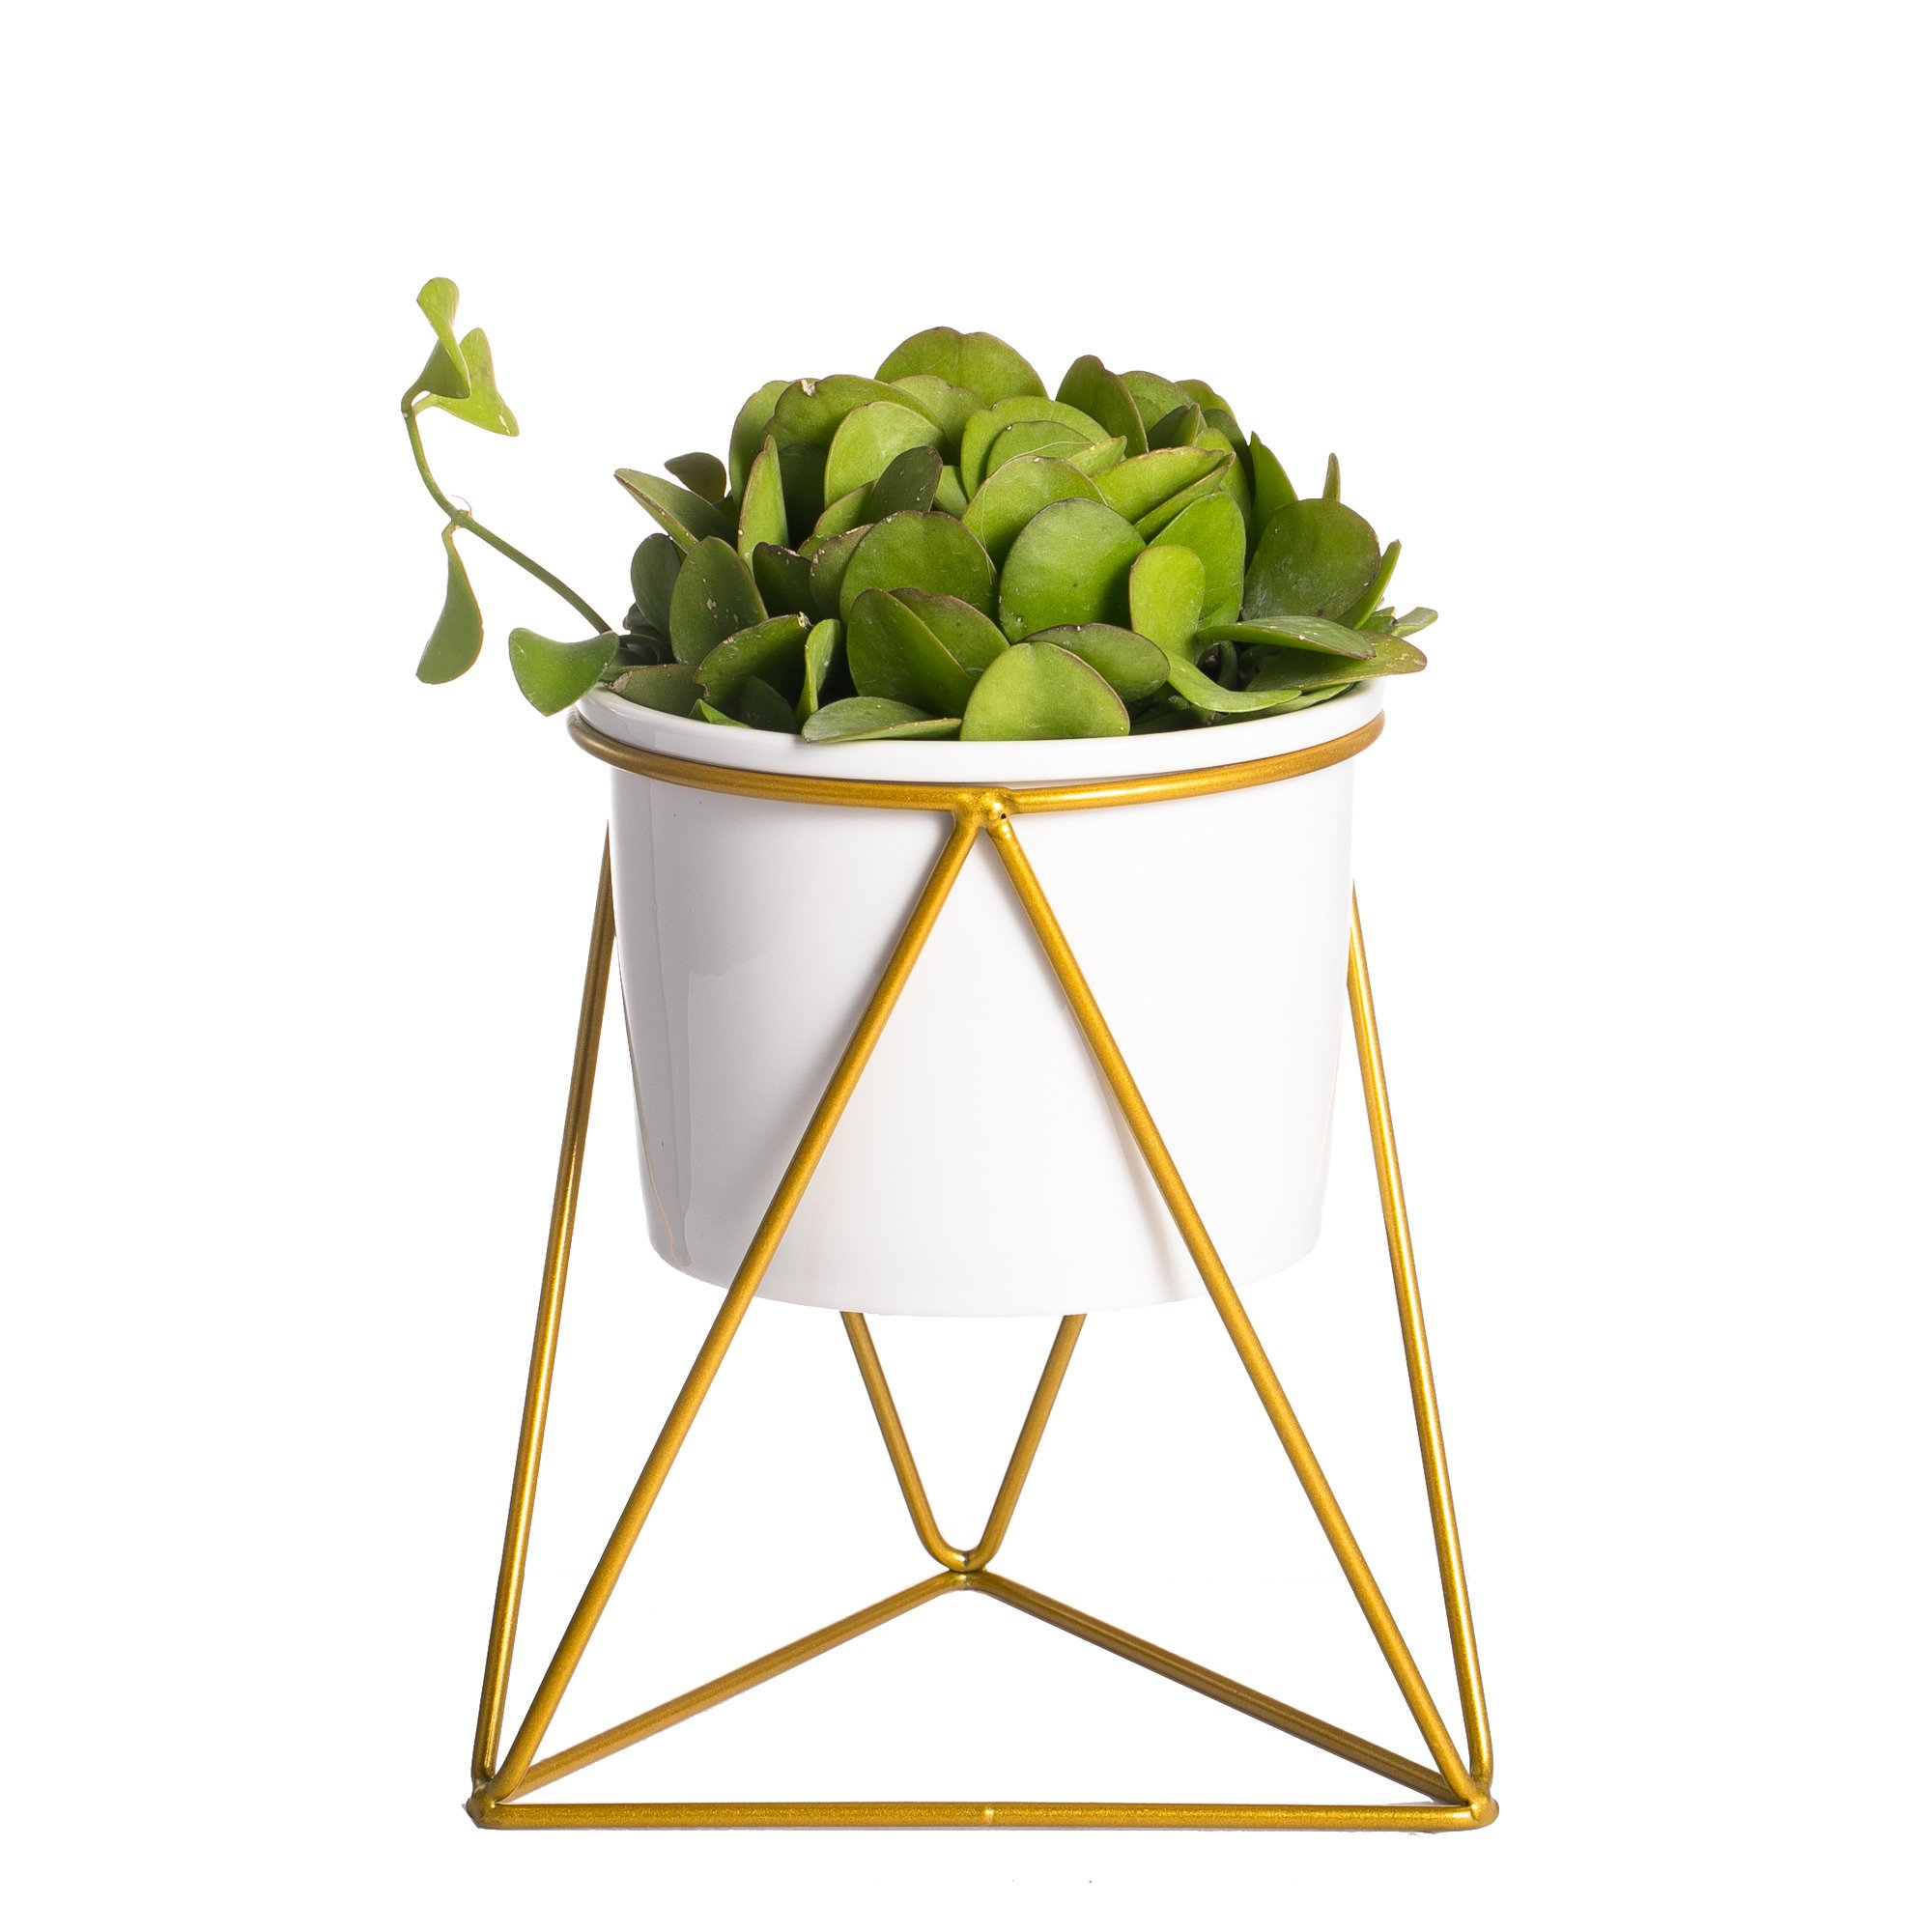 Geometric Iron Rack Holder Metal Stand Gold with White Ceramic Planter Indoor Desktop Garden Pot for Succulents Herbs Cactus Plants NCYP Modern Style Window Sill Decorative Bonsai by NCYP